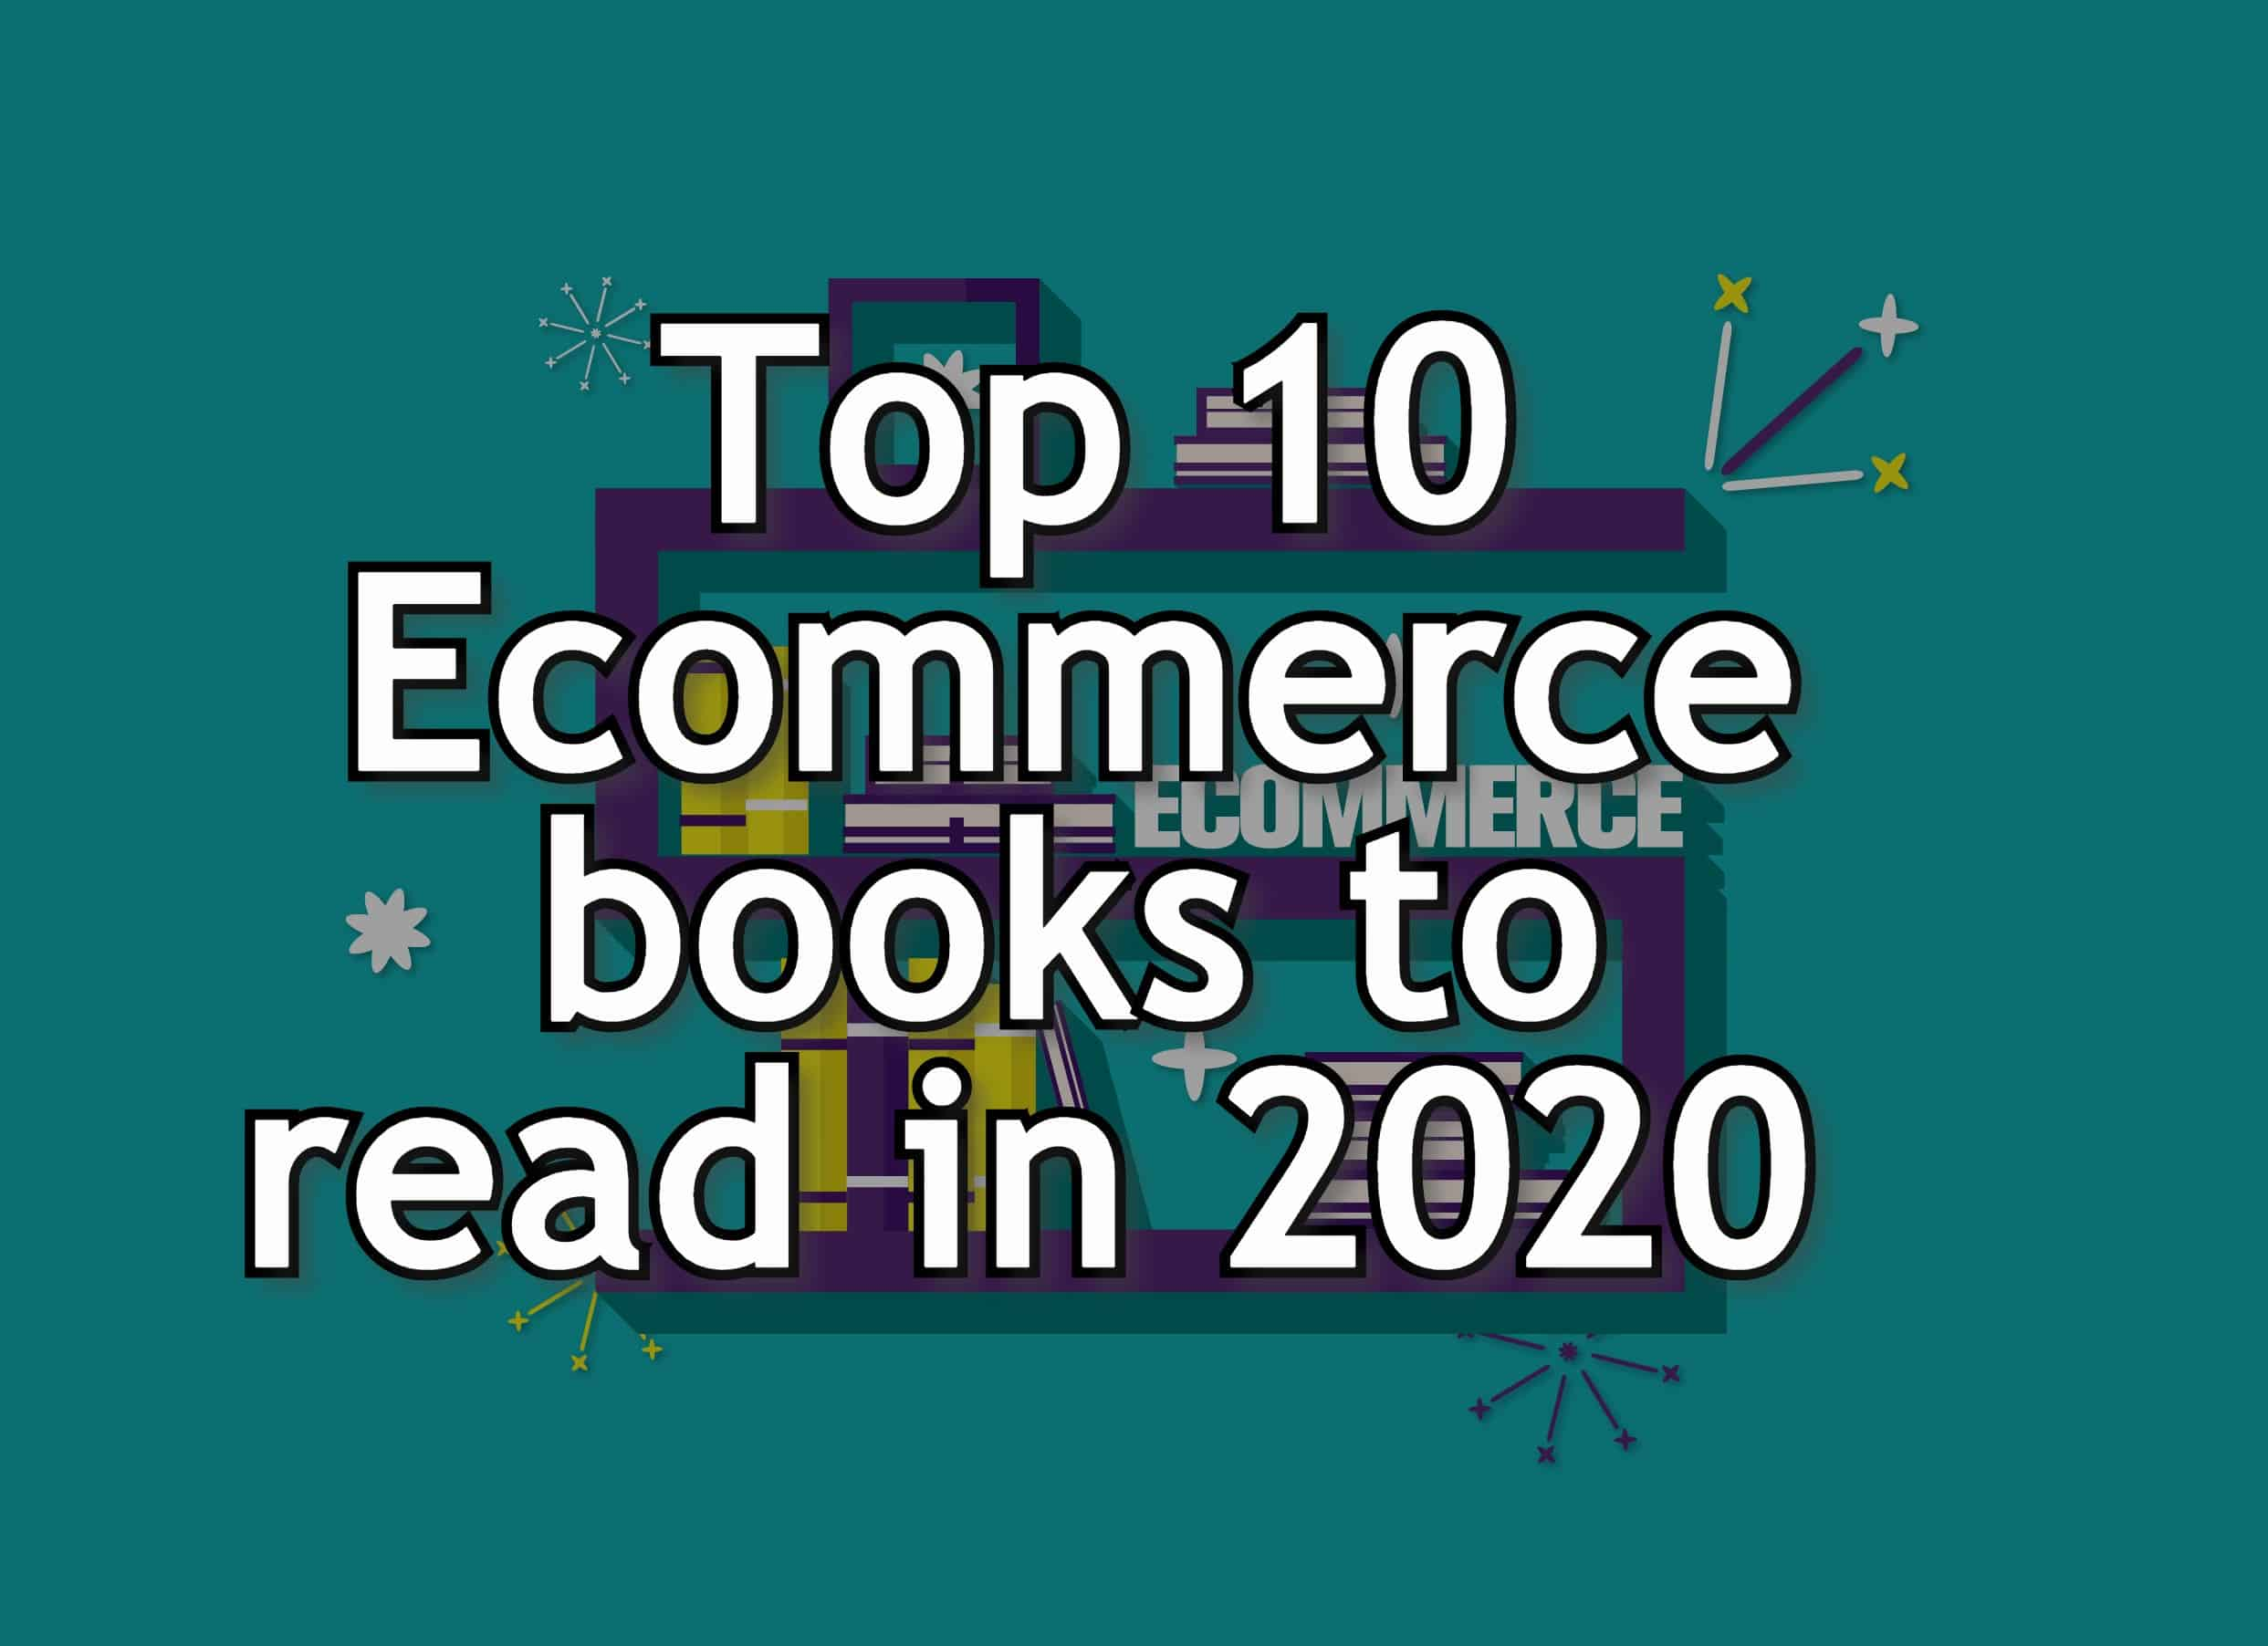 Top 10 e-commerce books to read in 2020